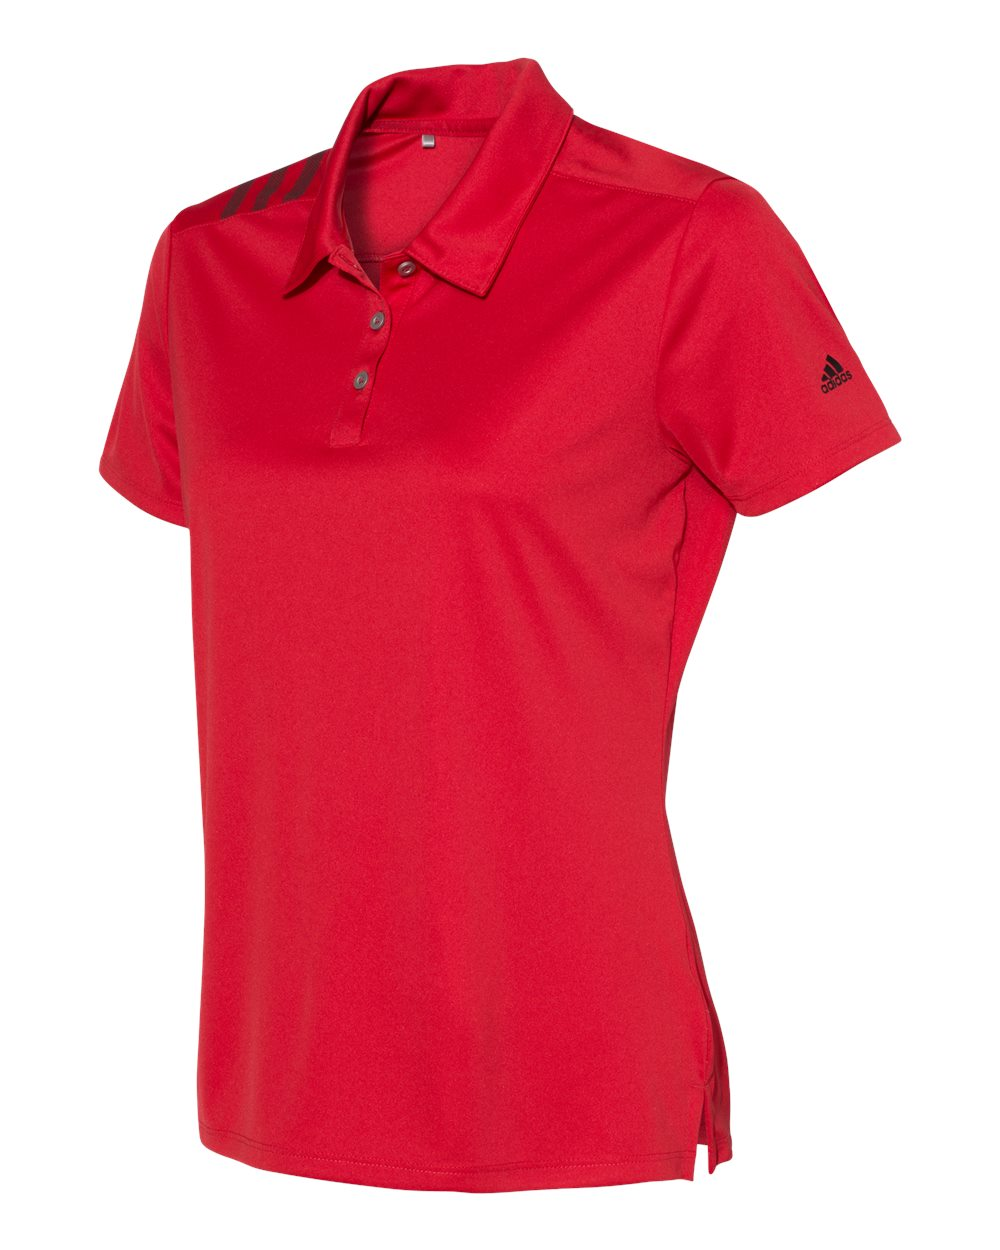 ADIDAS LADIES 3 STRIPES SHOULDER POLO